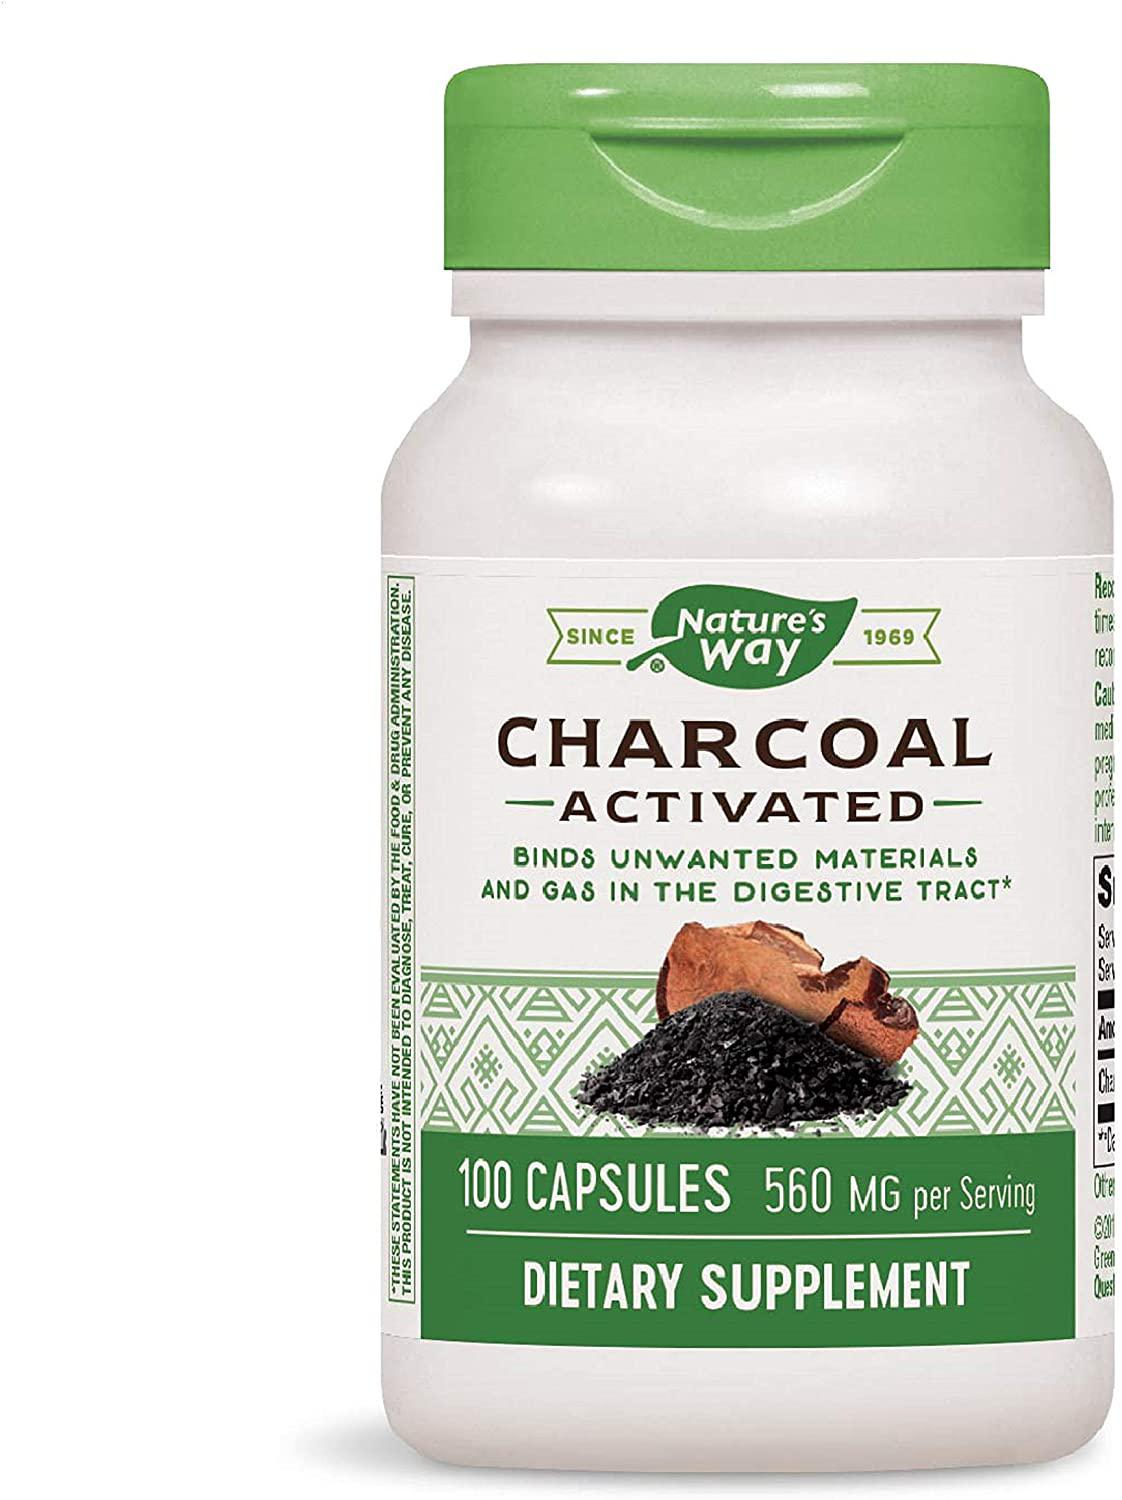 activated charcoal.jpg